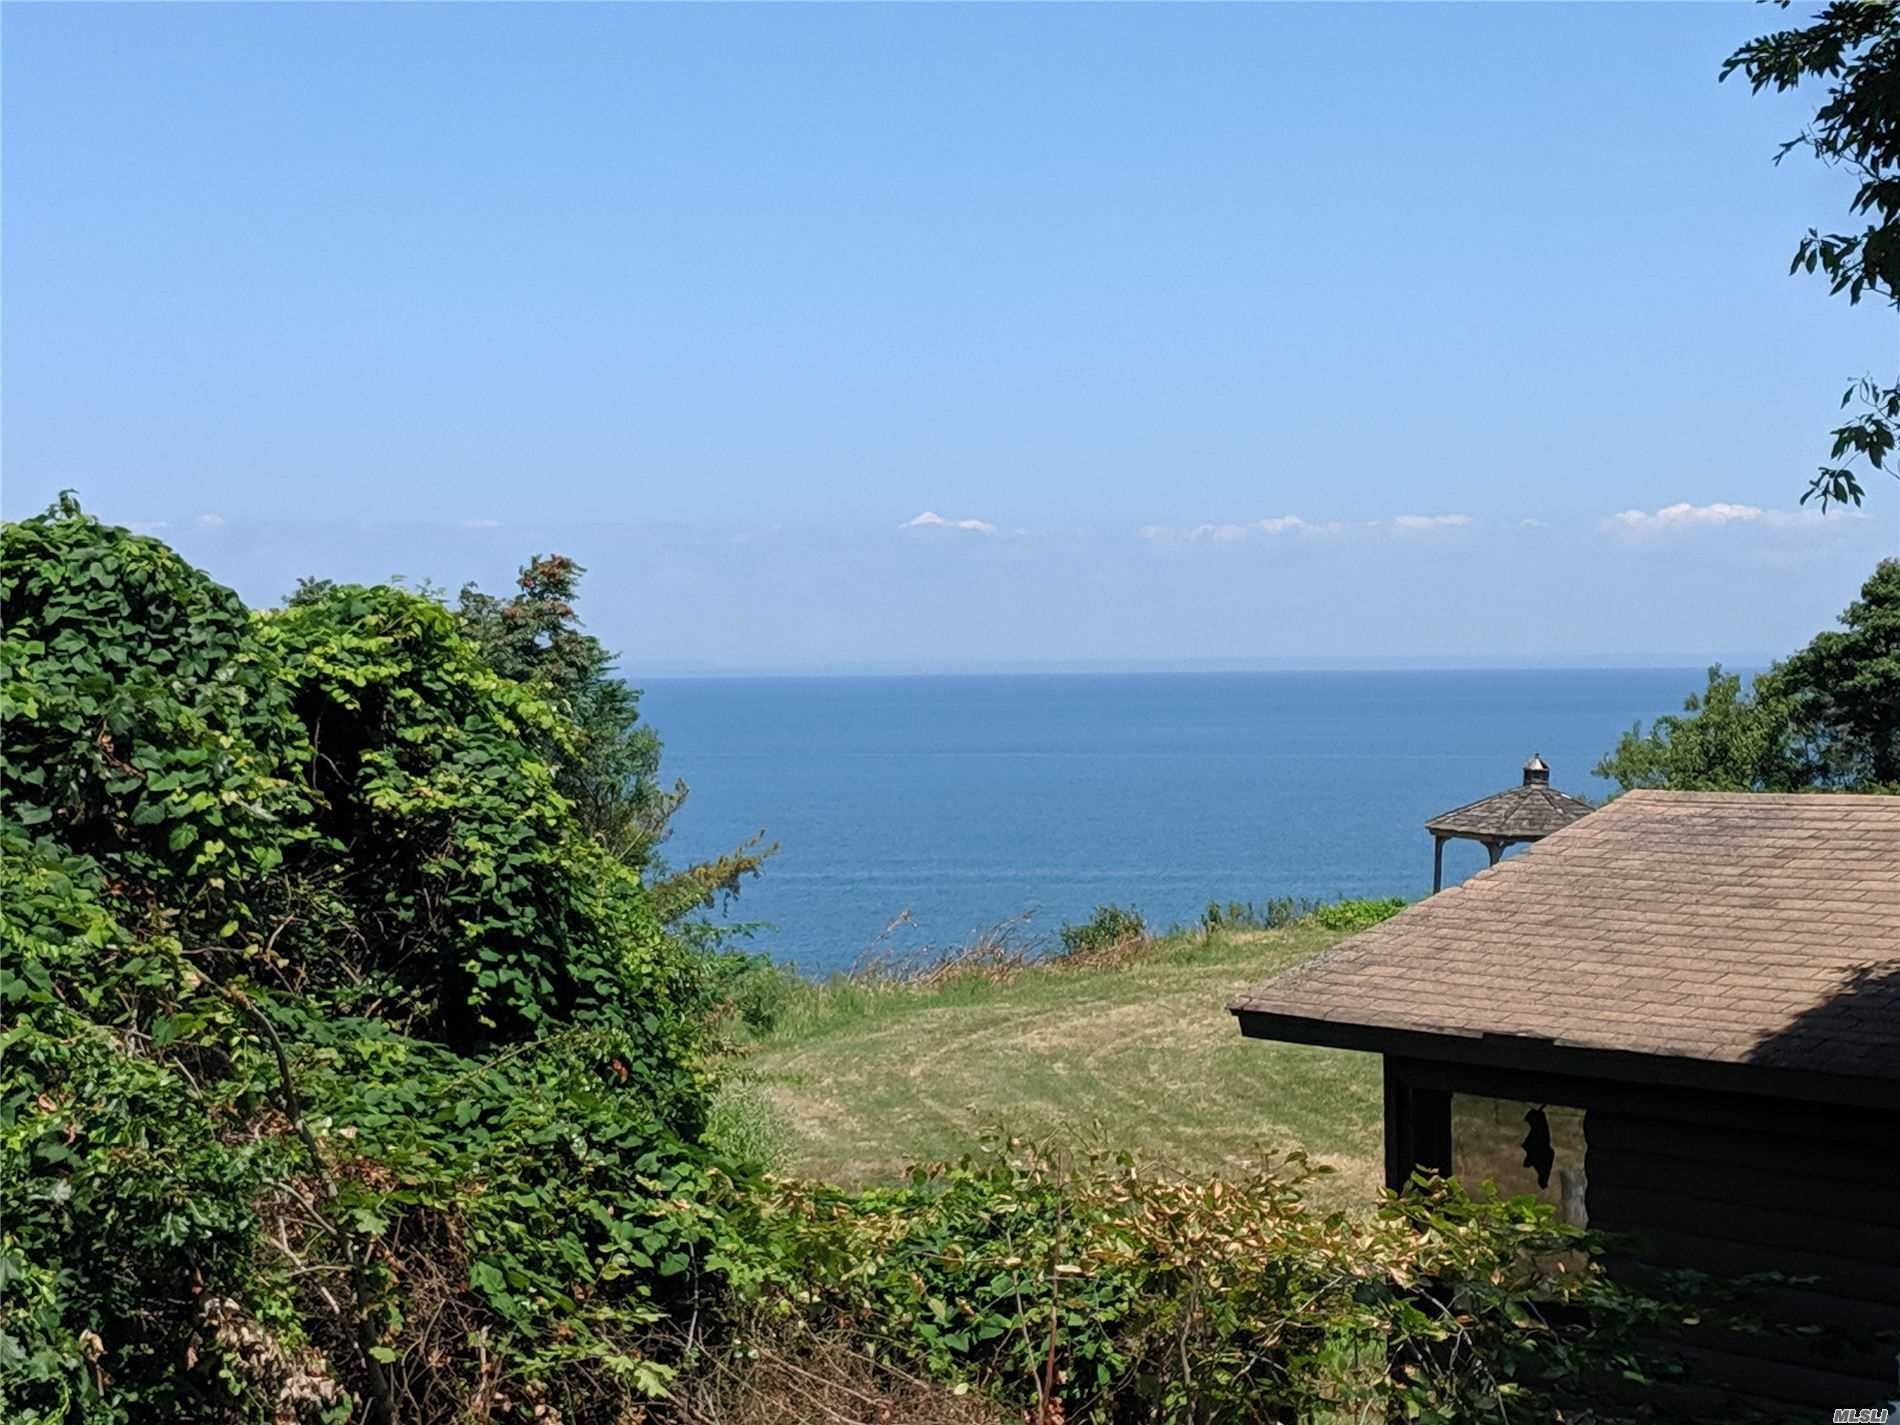 Wow, New Price! Sound Views! Looking For A Private Retreat? You've Found It In This Blufftop (No Flood Insurance Necessary!) Cedar Clad 3 Bedroom 2 Bath Home w New Kitchen, Baths, Large Deck Off Great Room. Master Balcony Offers Views Of Li Sound + A Peaceful Spot To Enjoy Cool Breezes. Hardwood Throughout. 15 Foot Deeded Right-Of-Way To Sound Beach. Basement w 9' Ceiling + Ose. Nearby Beach Allows Off Road Access. Enjoy The Wineries, Restaurants, And Shopping. The Perfect North Fork Getaway!